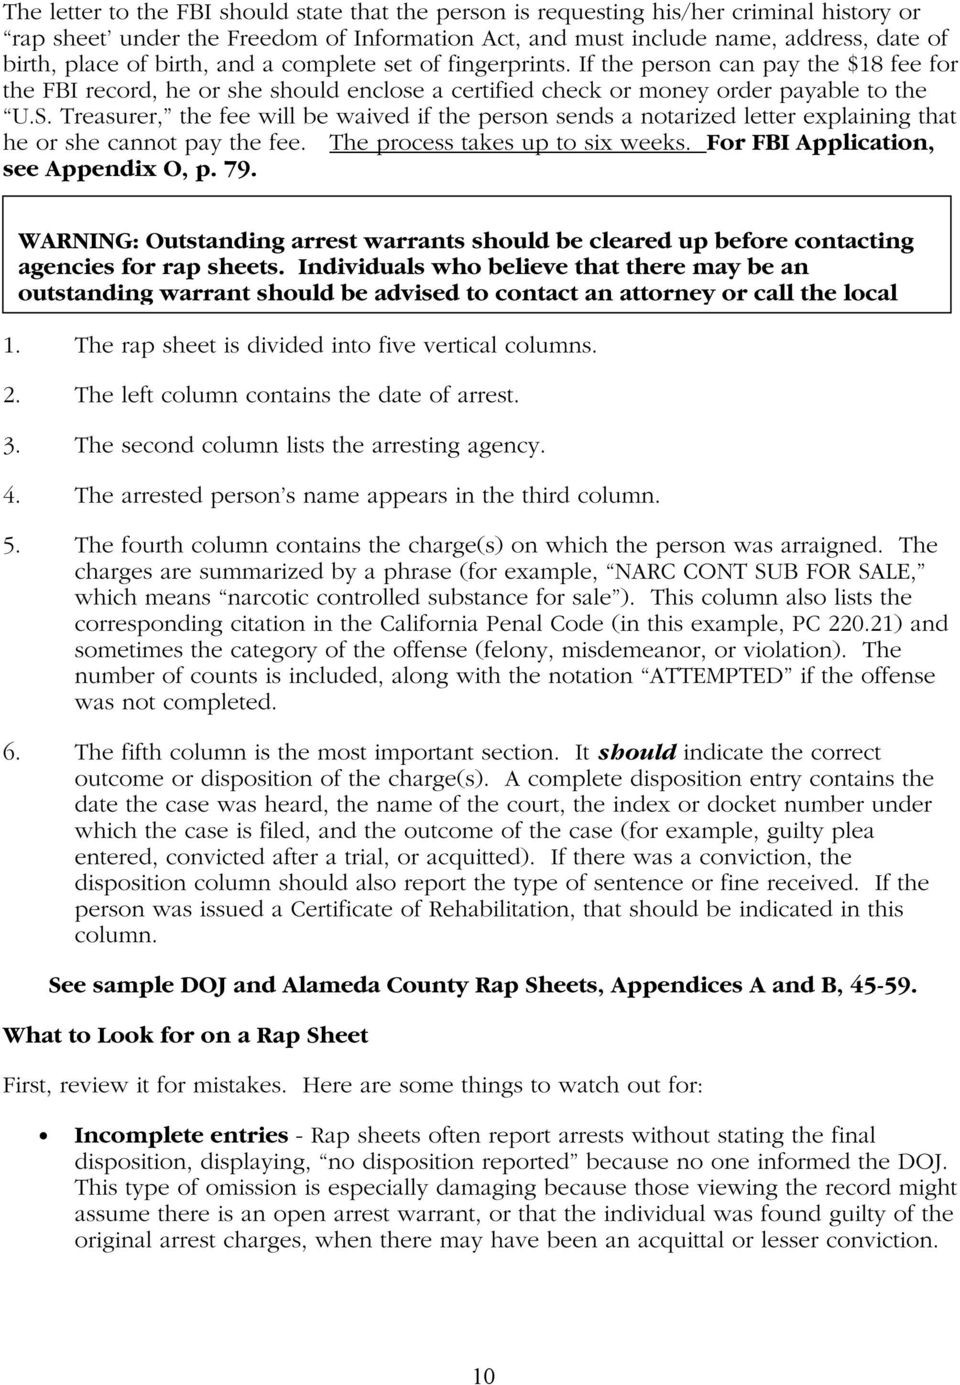 check about arrest warrants in alameda county